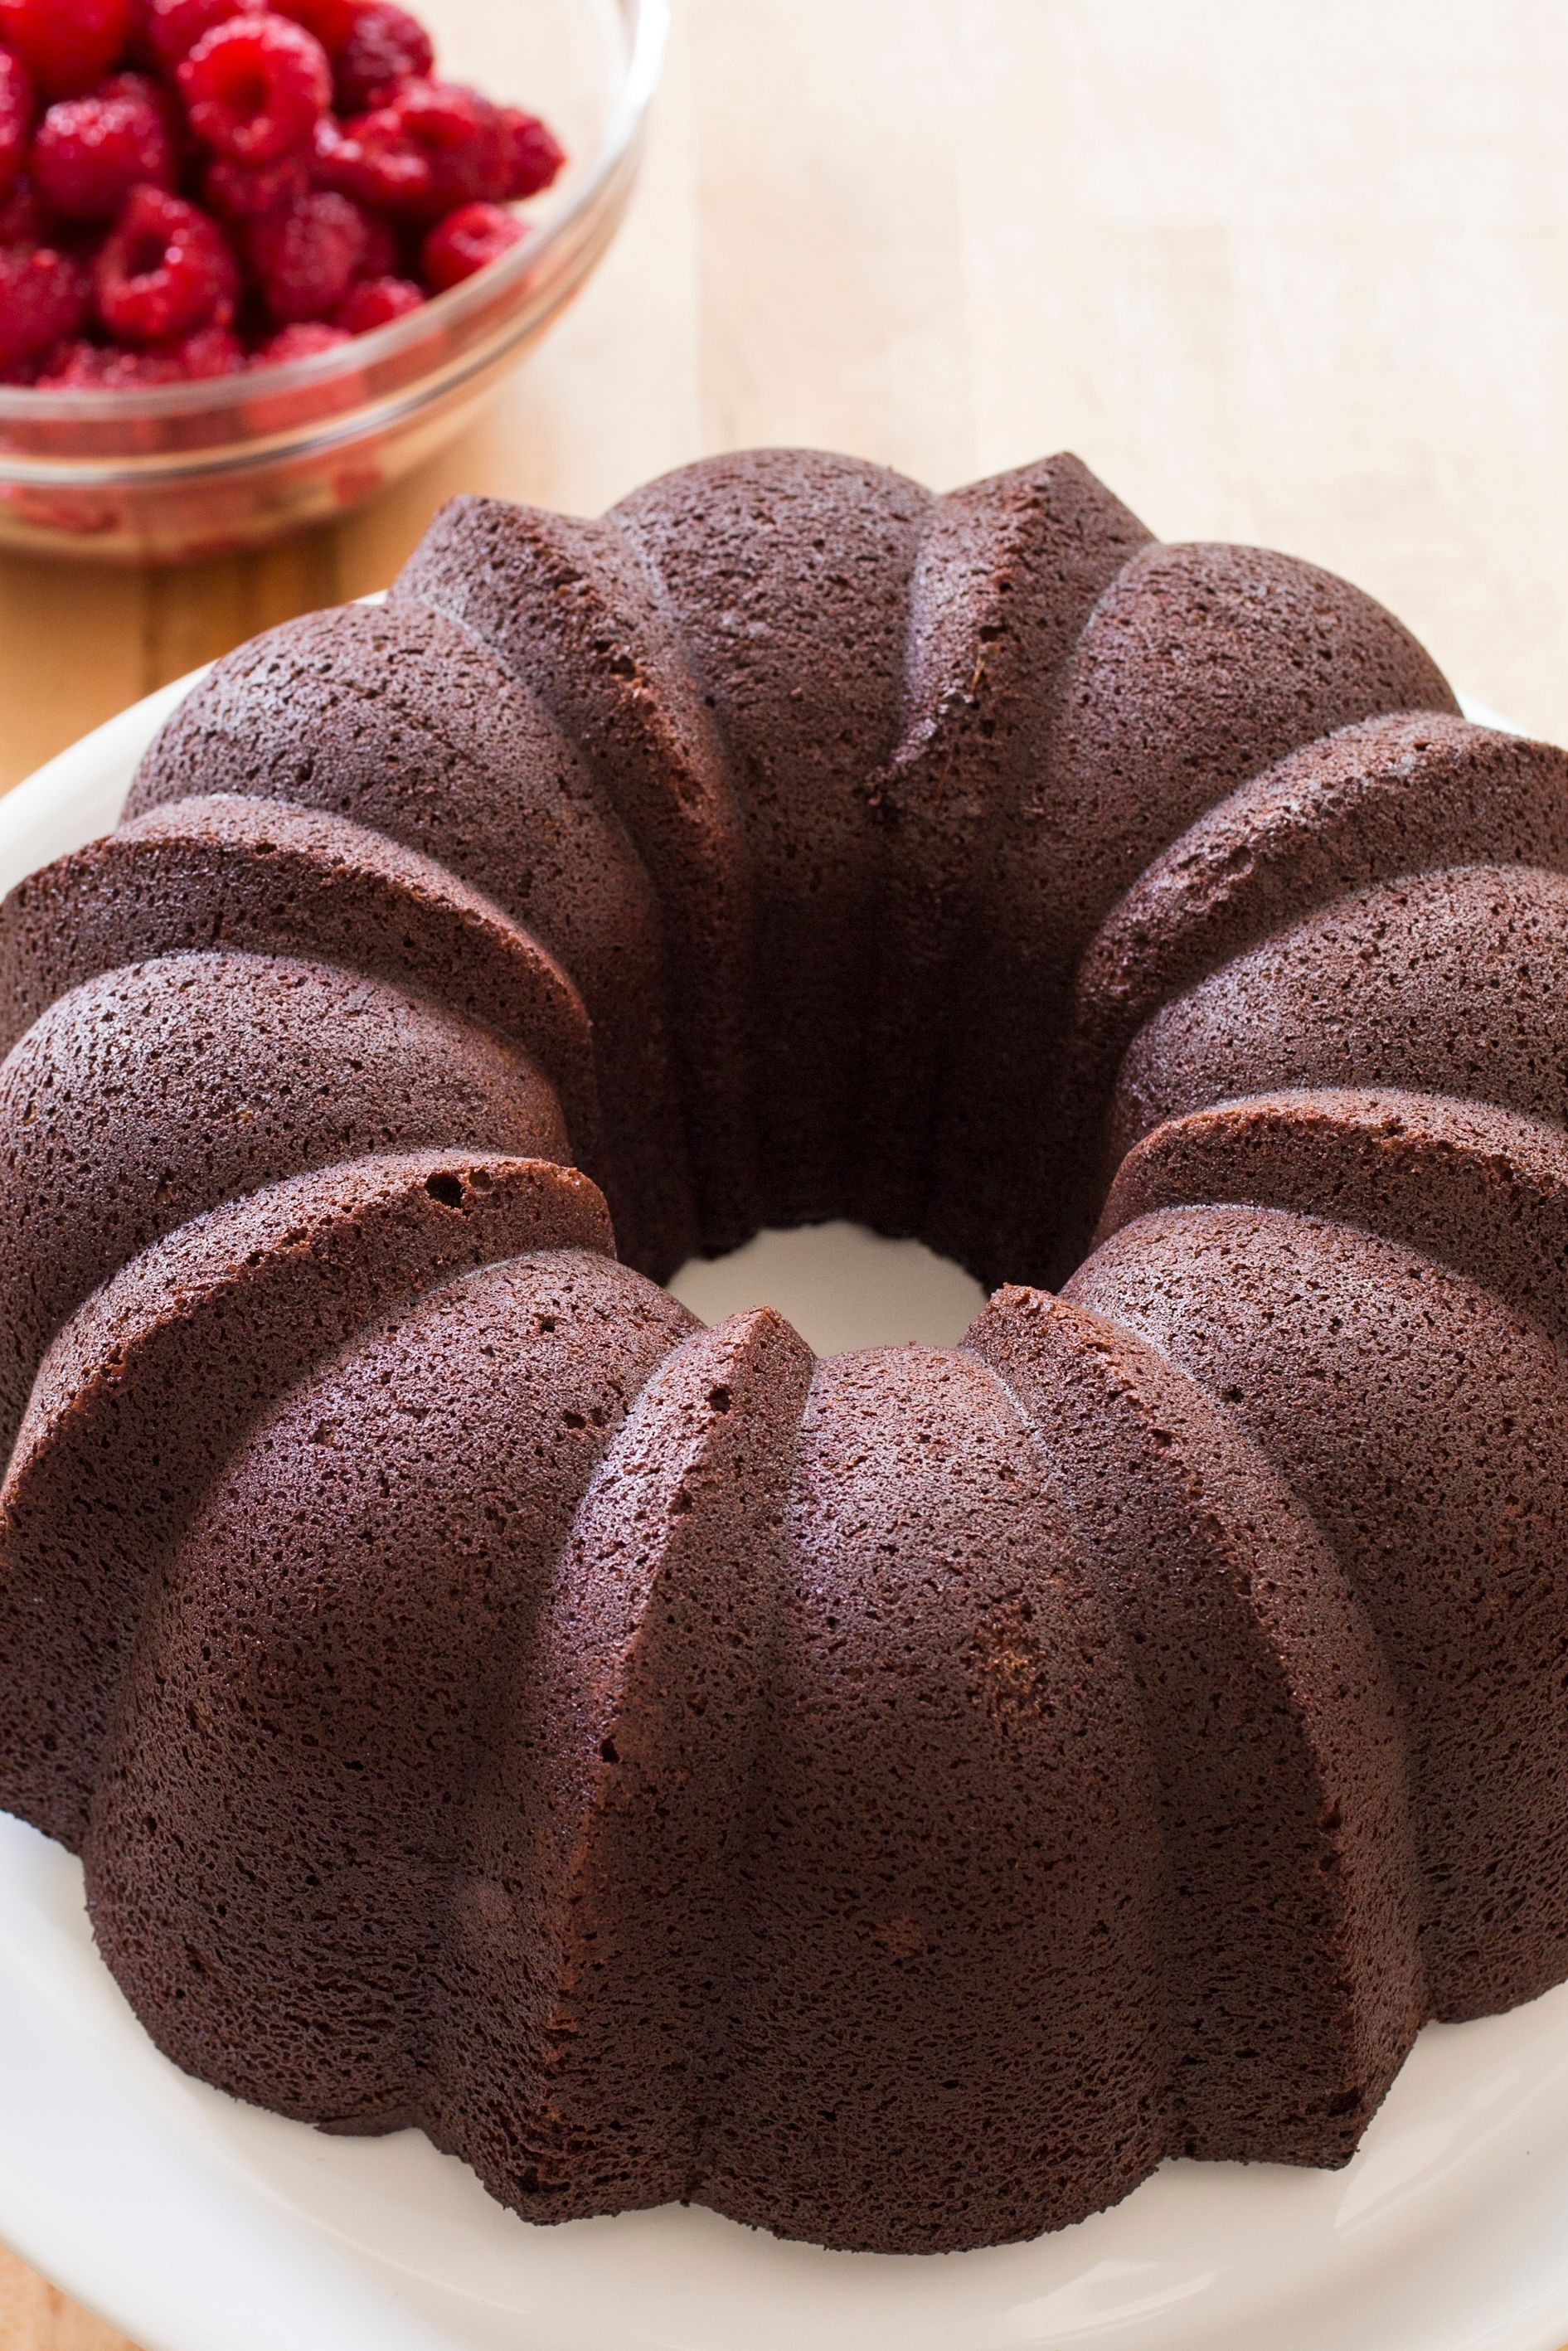 Chocolate Sour Cream Bundt Cake Cook S Illustrated Recipe In 2020 Cooks Illustrated Yummy Cakes Bundt Cake